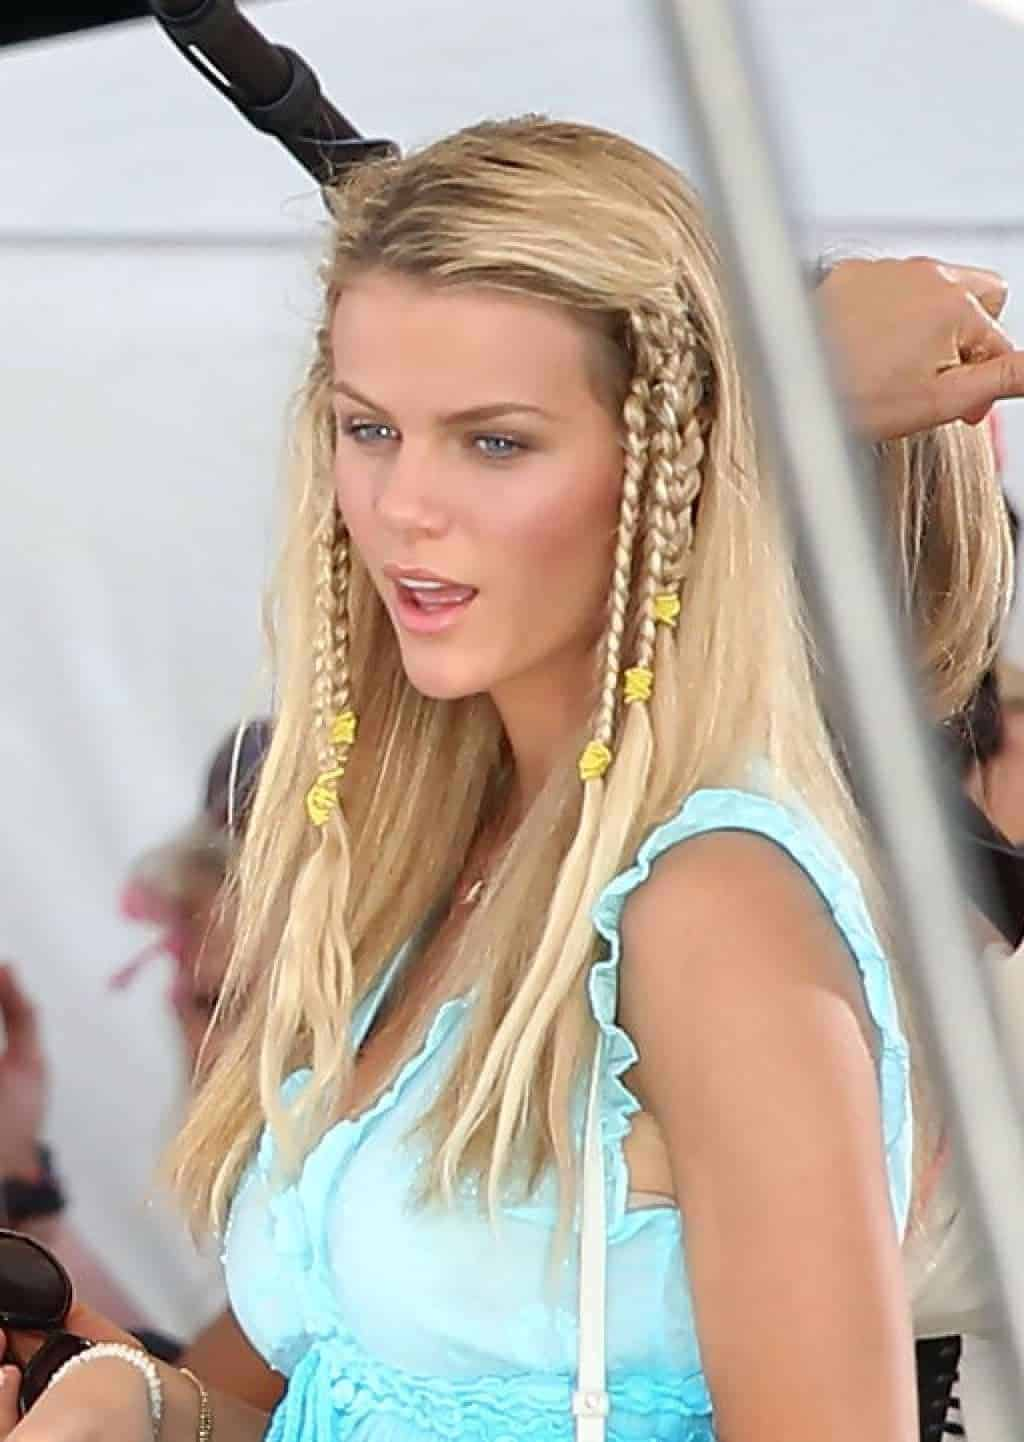 Messy hairstyles for blonde women